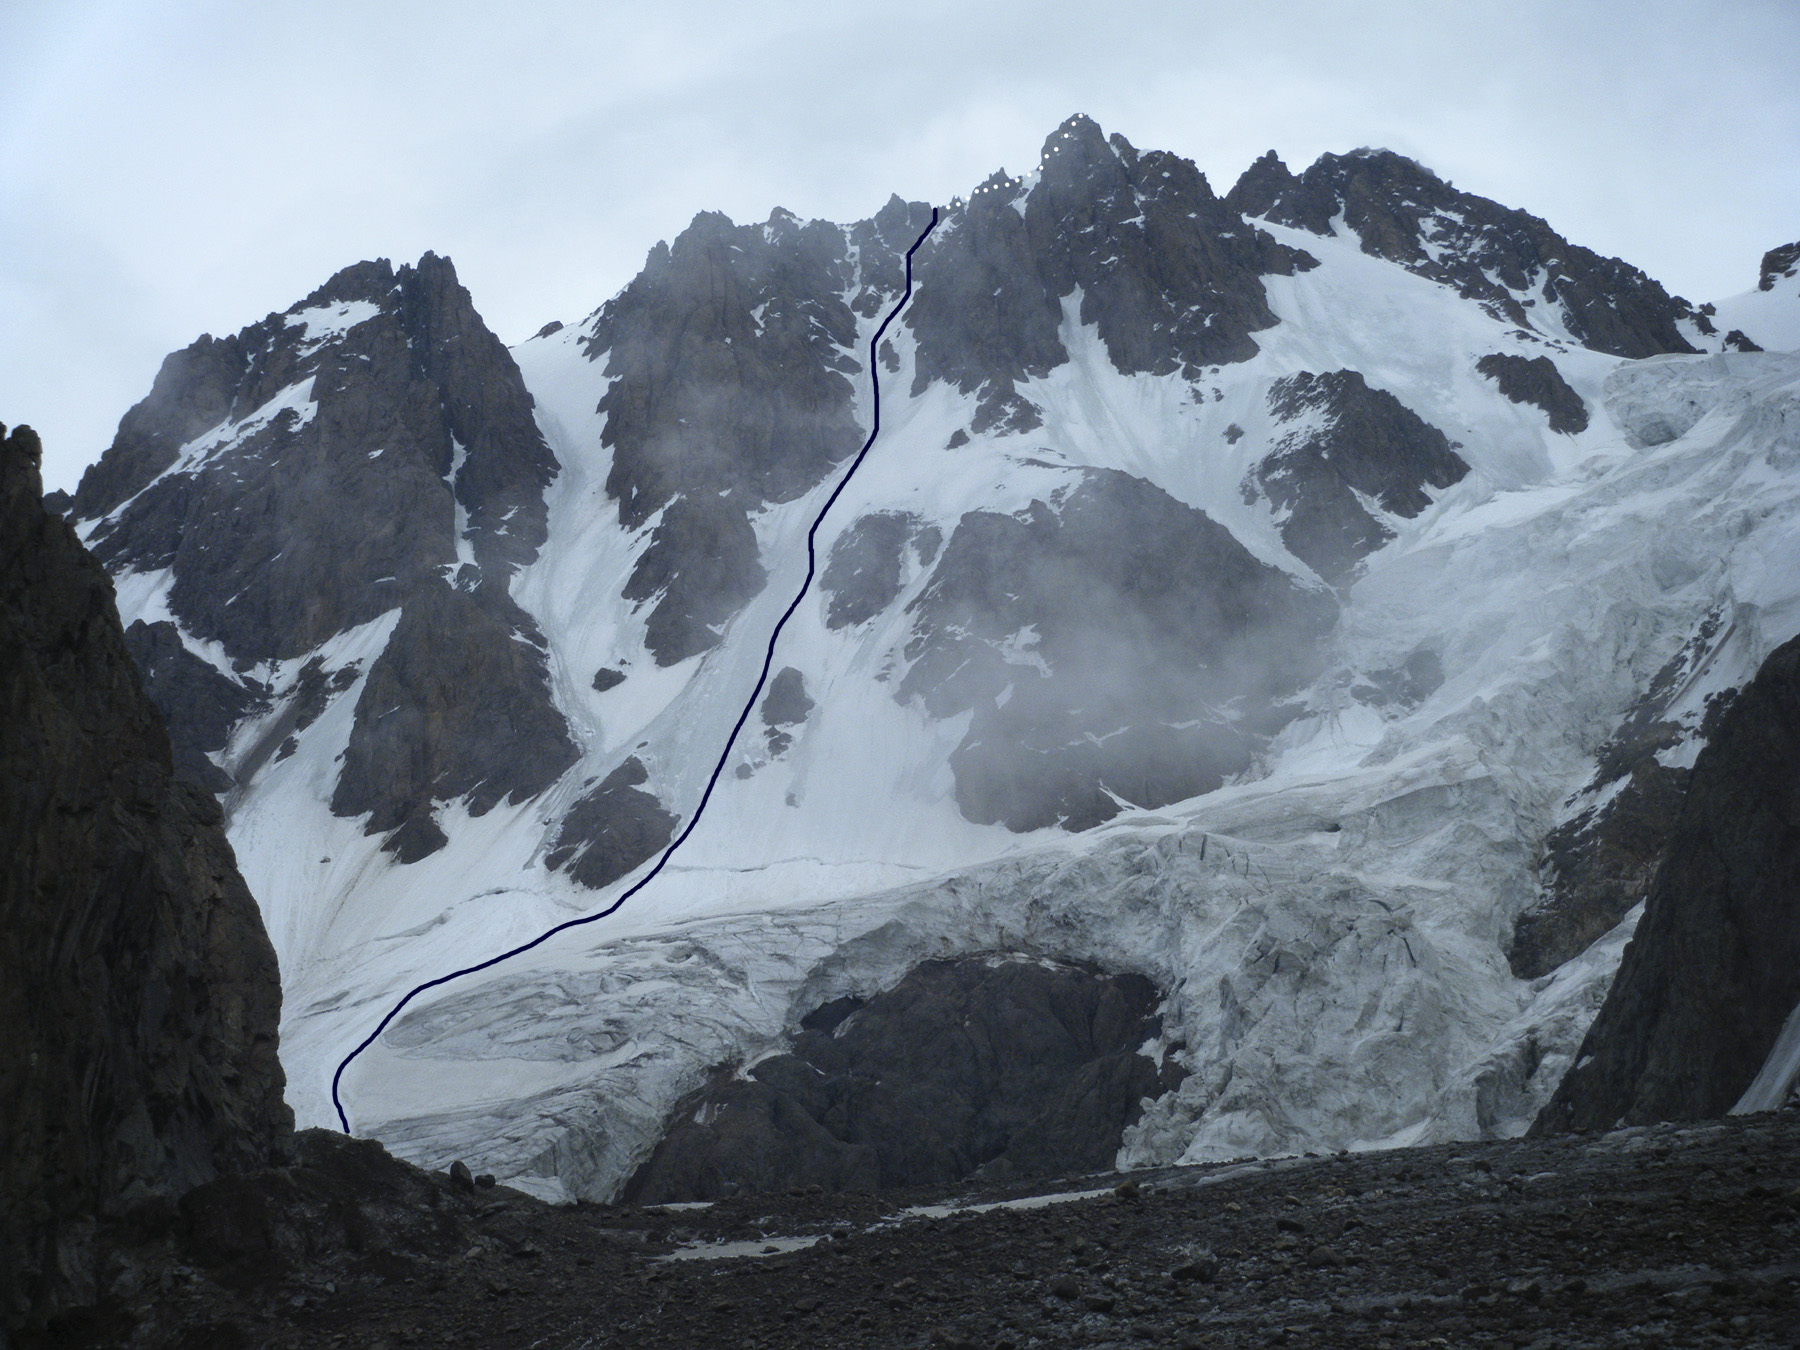 Northwest face of Talgar main summit showing 2010 Komarov-Urubko route right of the rock buttress of Pelevin's route.